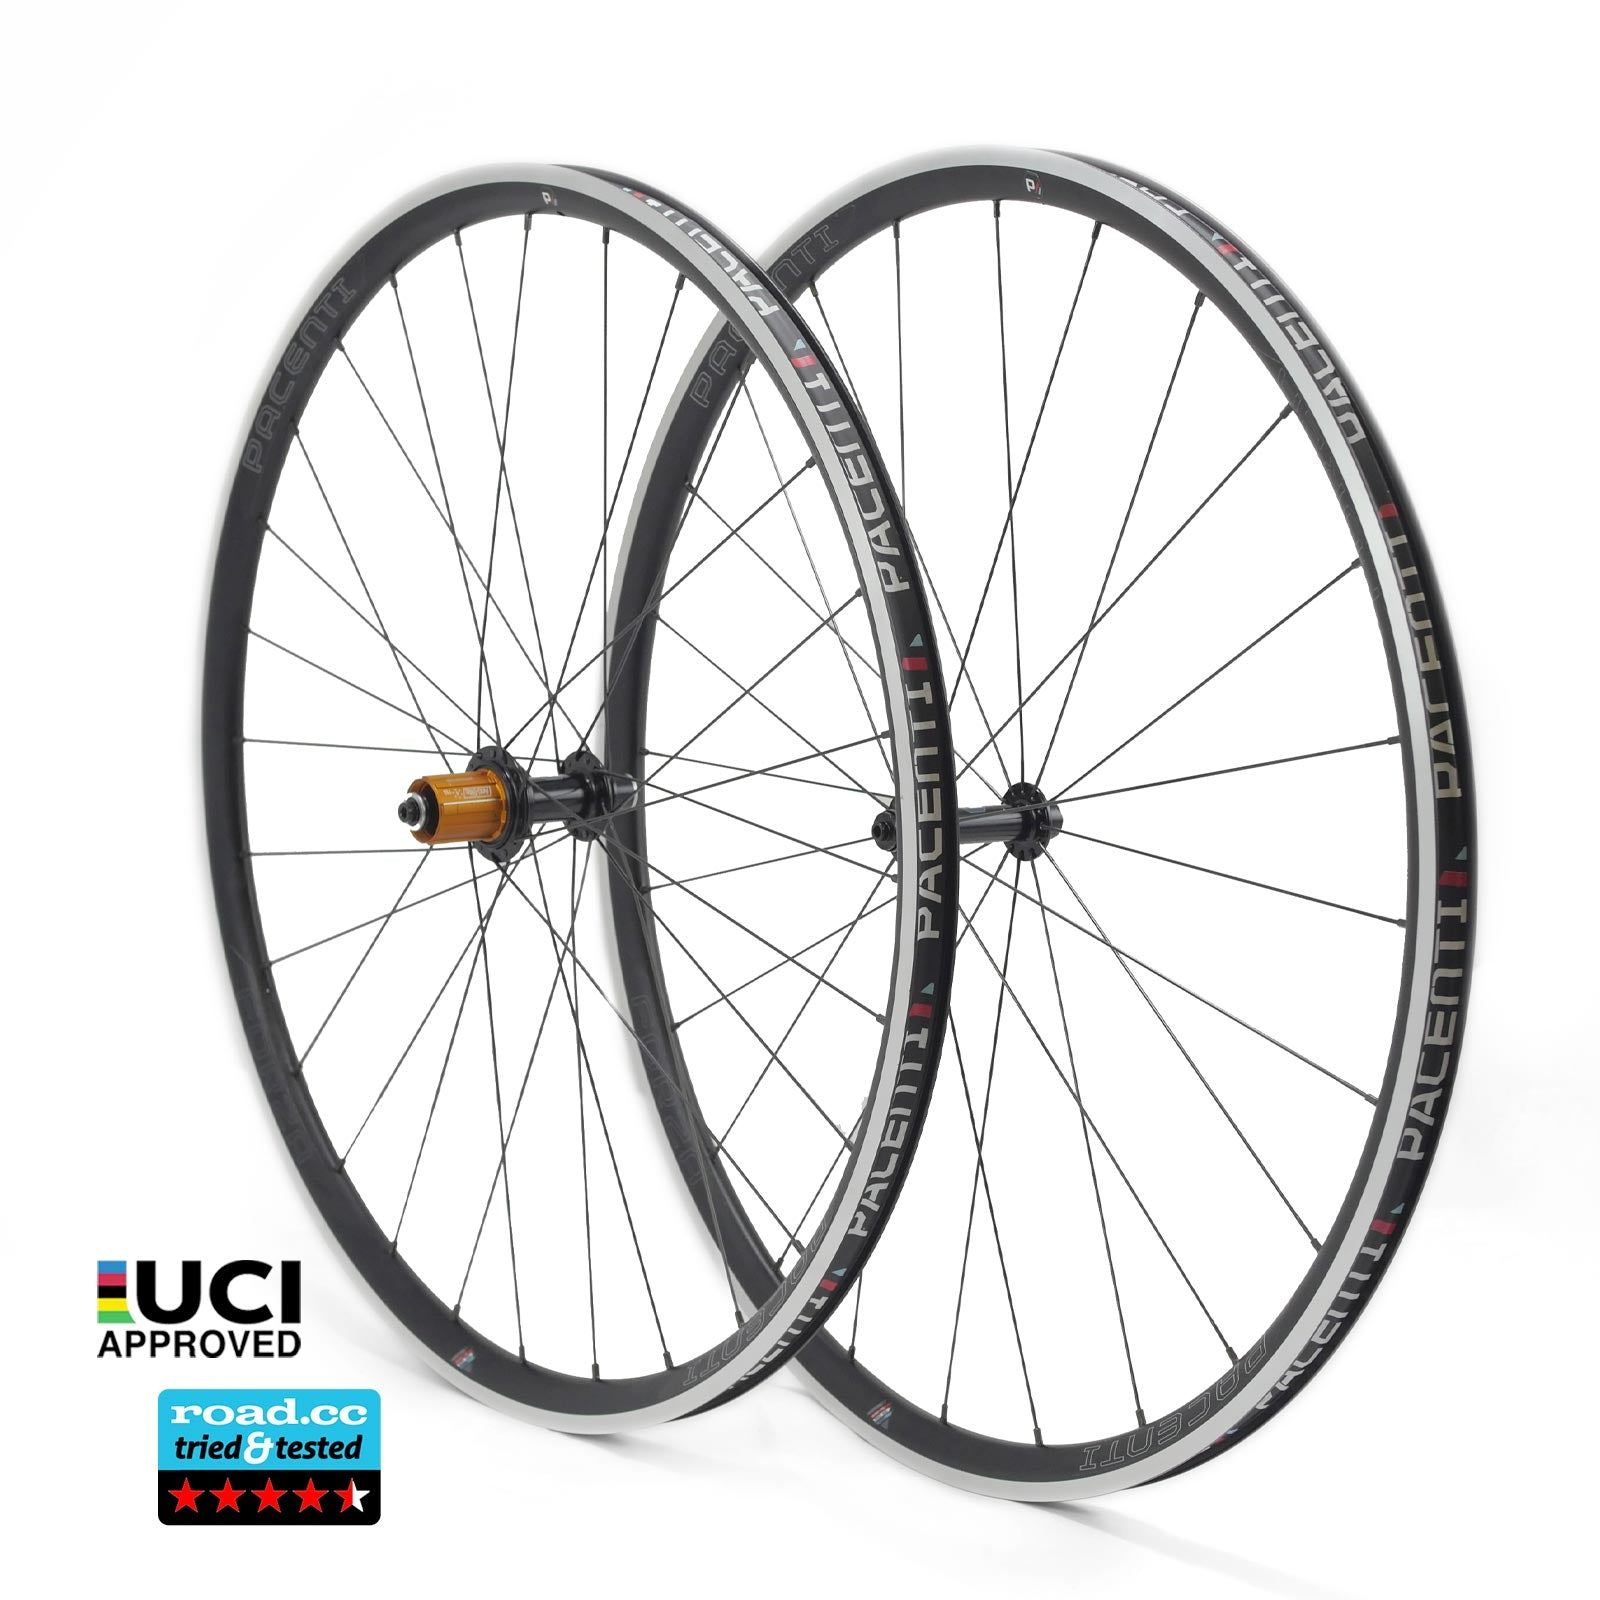 TRAINING BUNDLE - Forza wheelset rim brake Schwalbe Durano Tyres, Tubes, Skewers